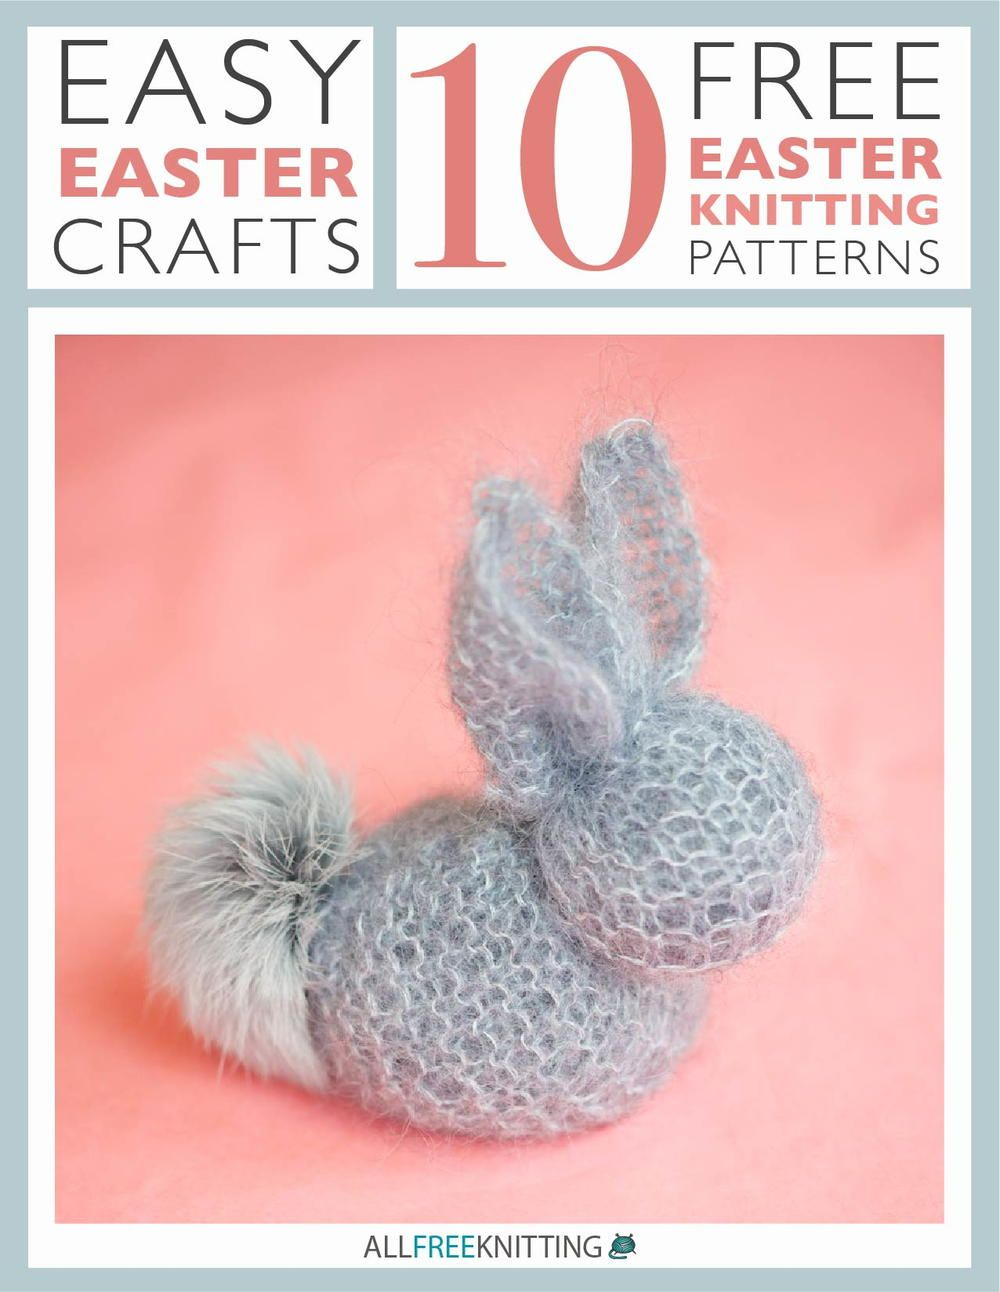 Easy Easter Crafts: 10 Free Easter Knitting Patterns | knitting ...